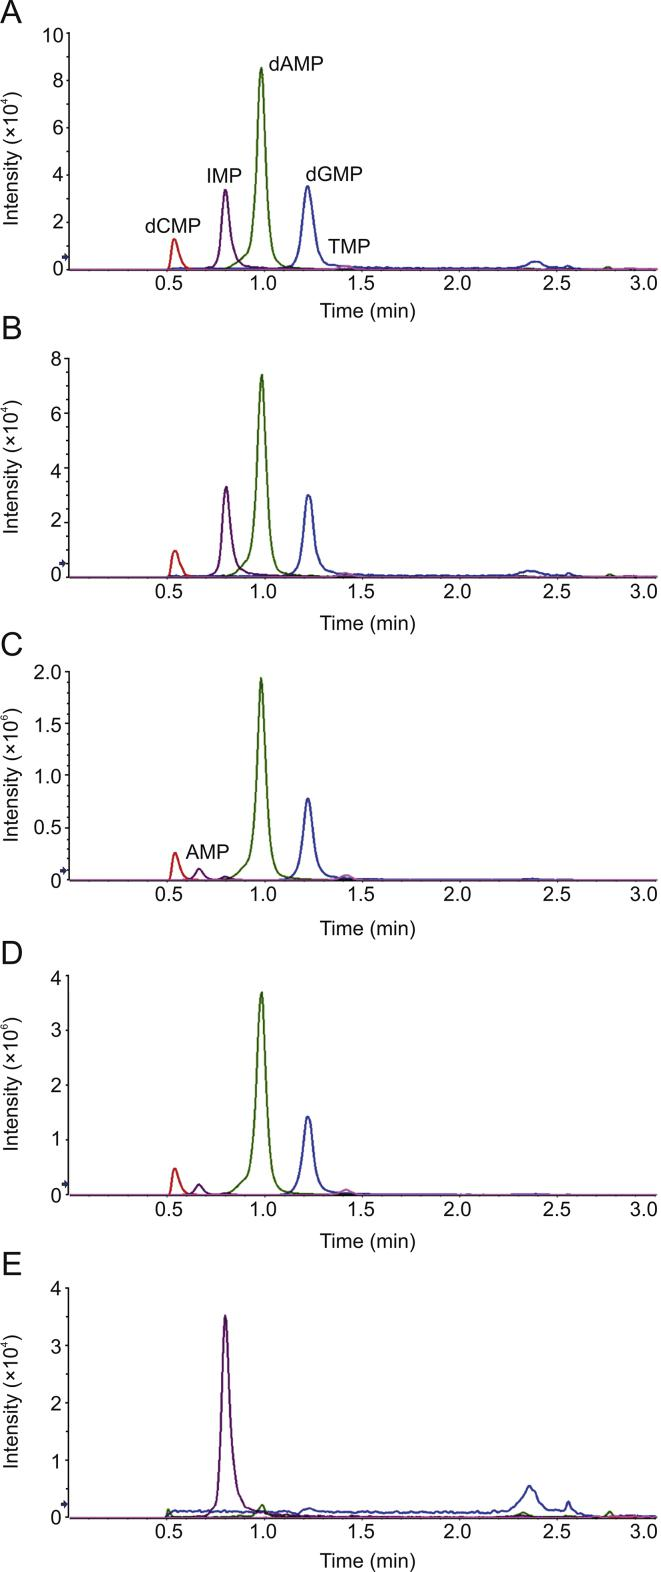 Representative chromatograms in UPLC-MSMS analysis: (A) 20 ng/mL equimolar mixture of the 4 deoxyribonucleotides; (B) 20 ng/mL CT DNA after nuclease P1 digestion; (C) 100 μg/mL CT DNA spiked with 100 μg/mL ribonucleotide equimolar mixture, after nuclease P1 digestion (200-fold diluted before injection); (D) DNA isolated from mouse tumor, after nuclease P1 digestion (200-fold diluted before injection); (E) 20 ng/mL CT DNA after DNase I digestion.